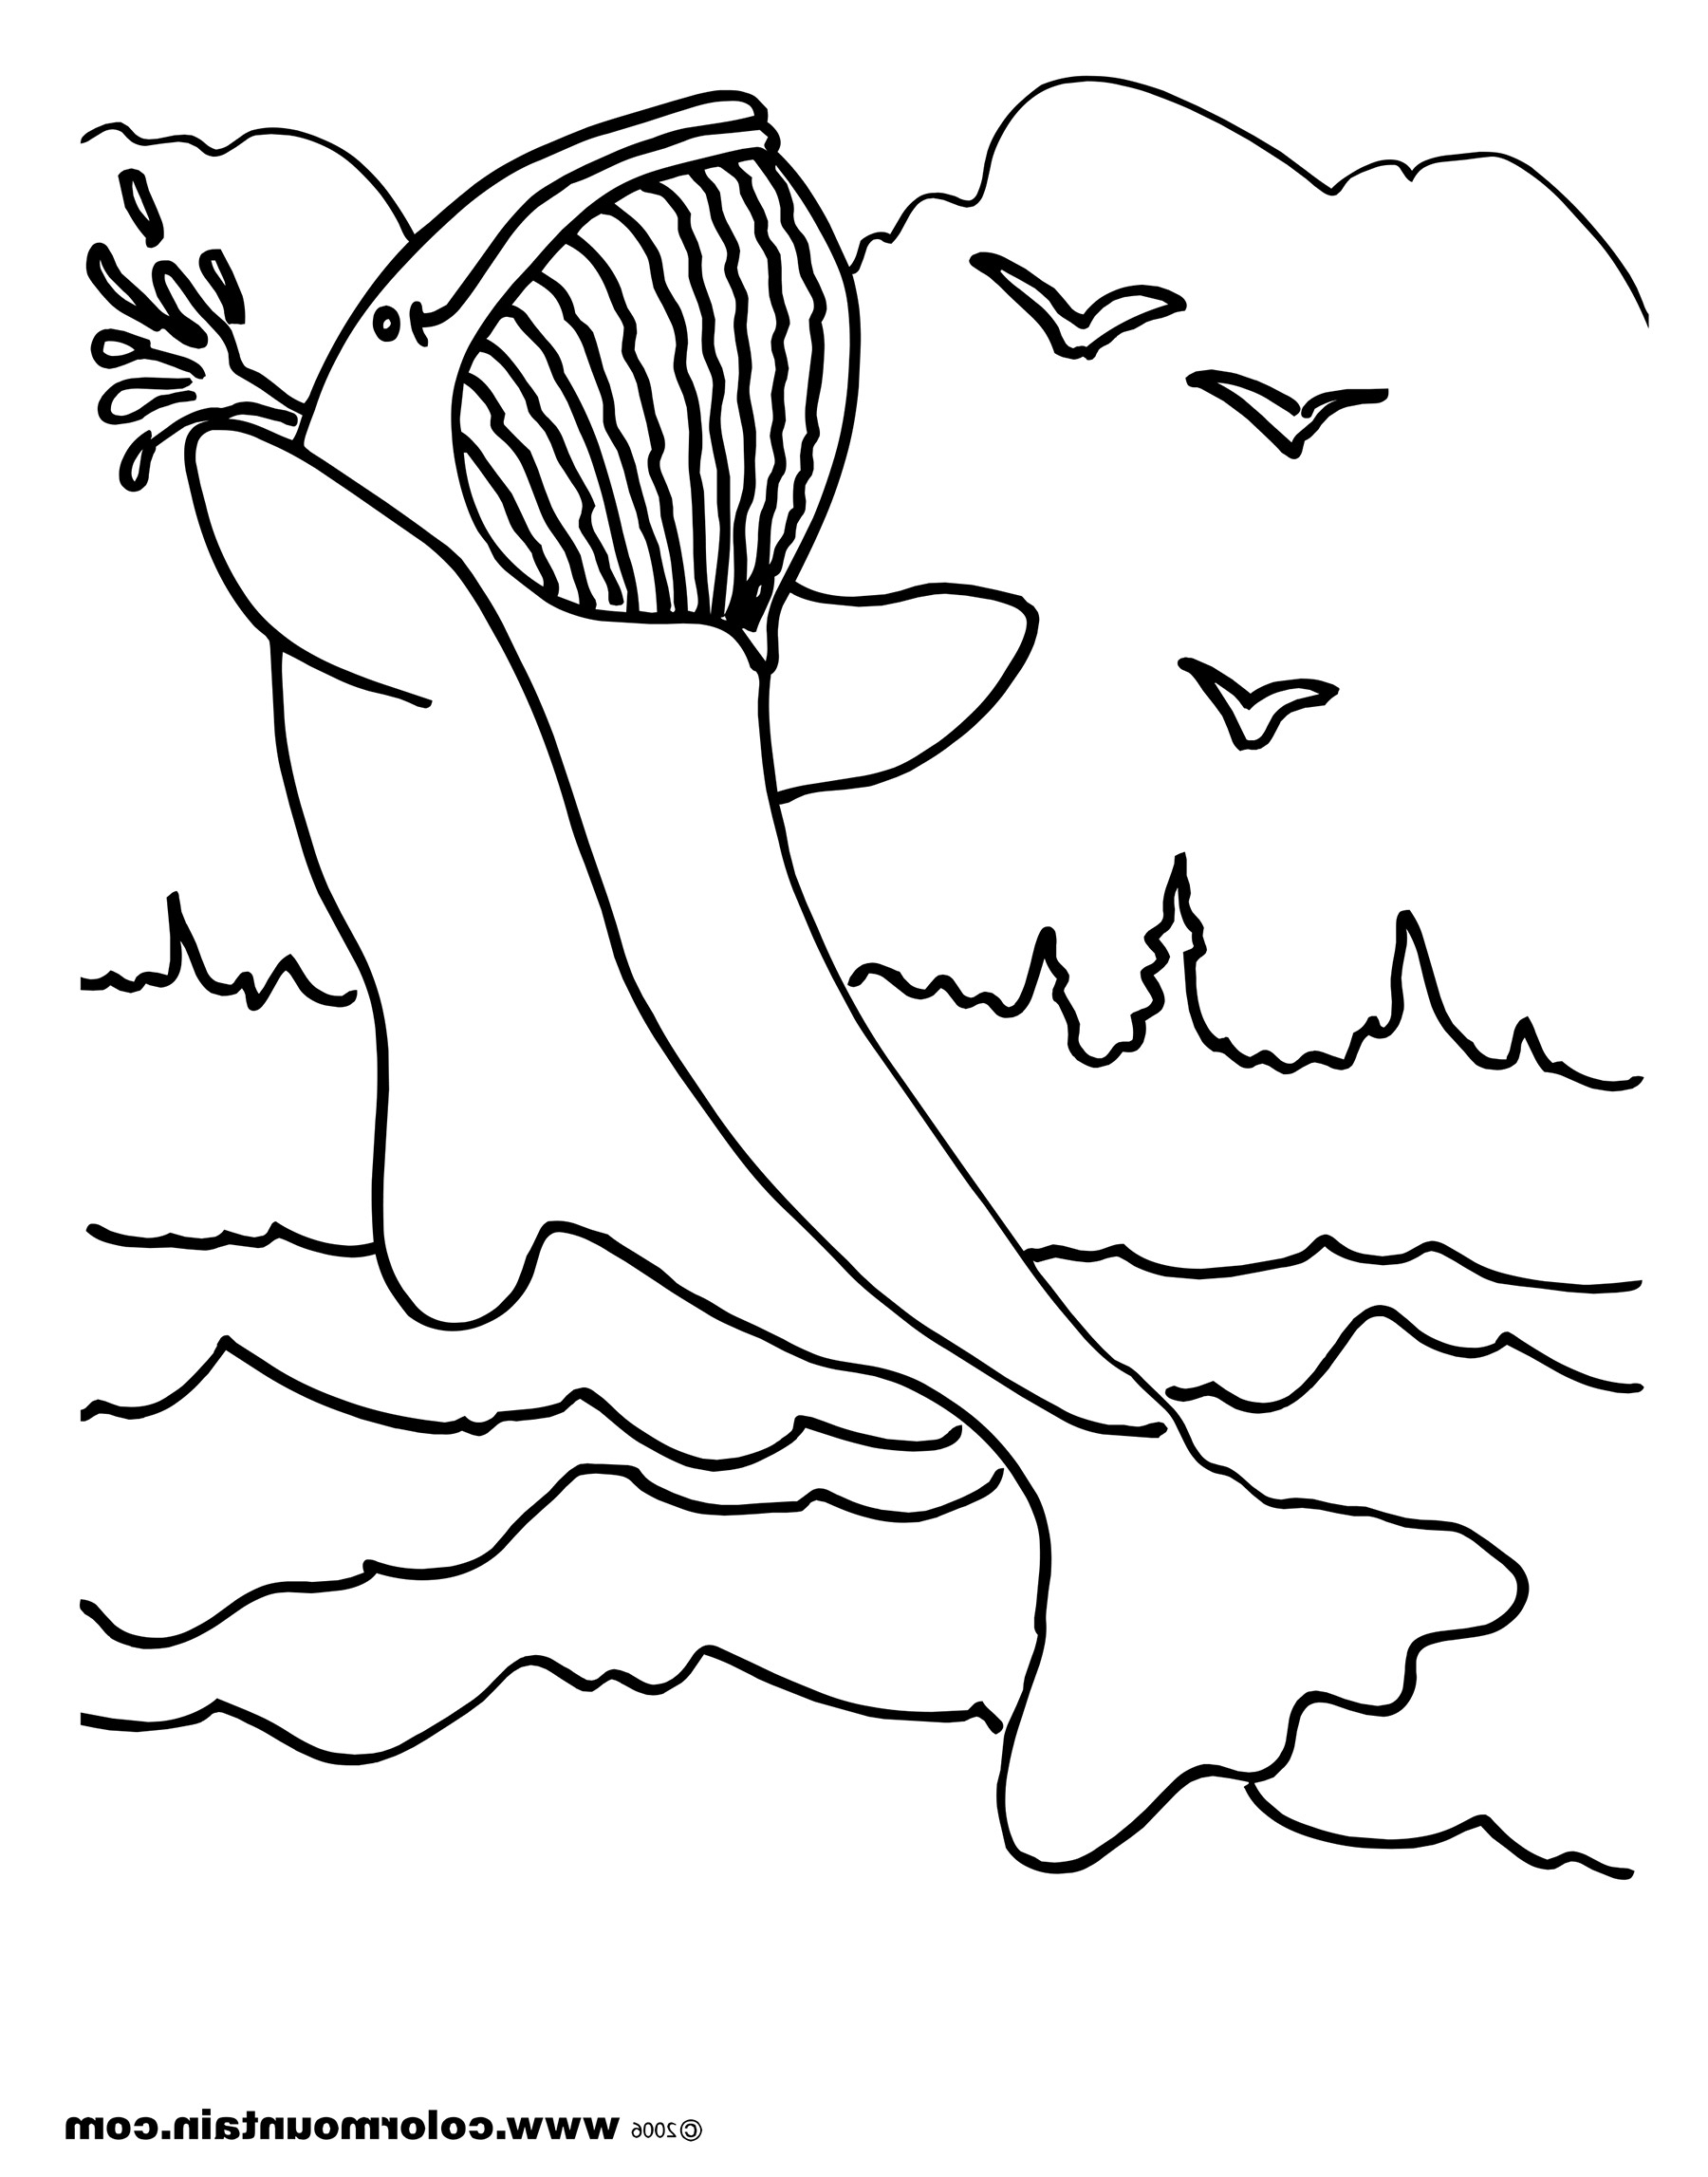 Blue Whale Line Drawing at GetDrawings.com | Free for personal use ...